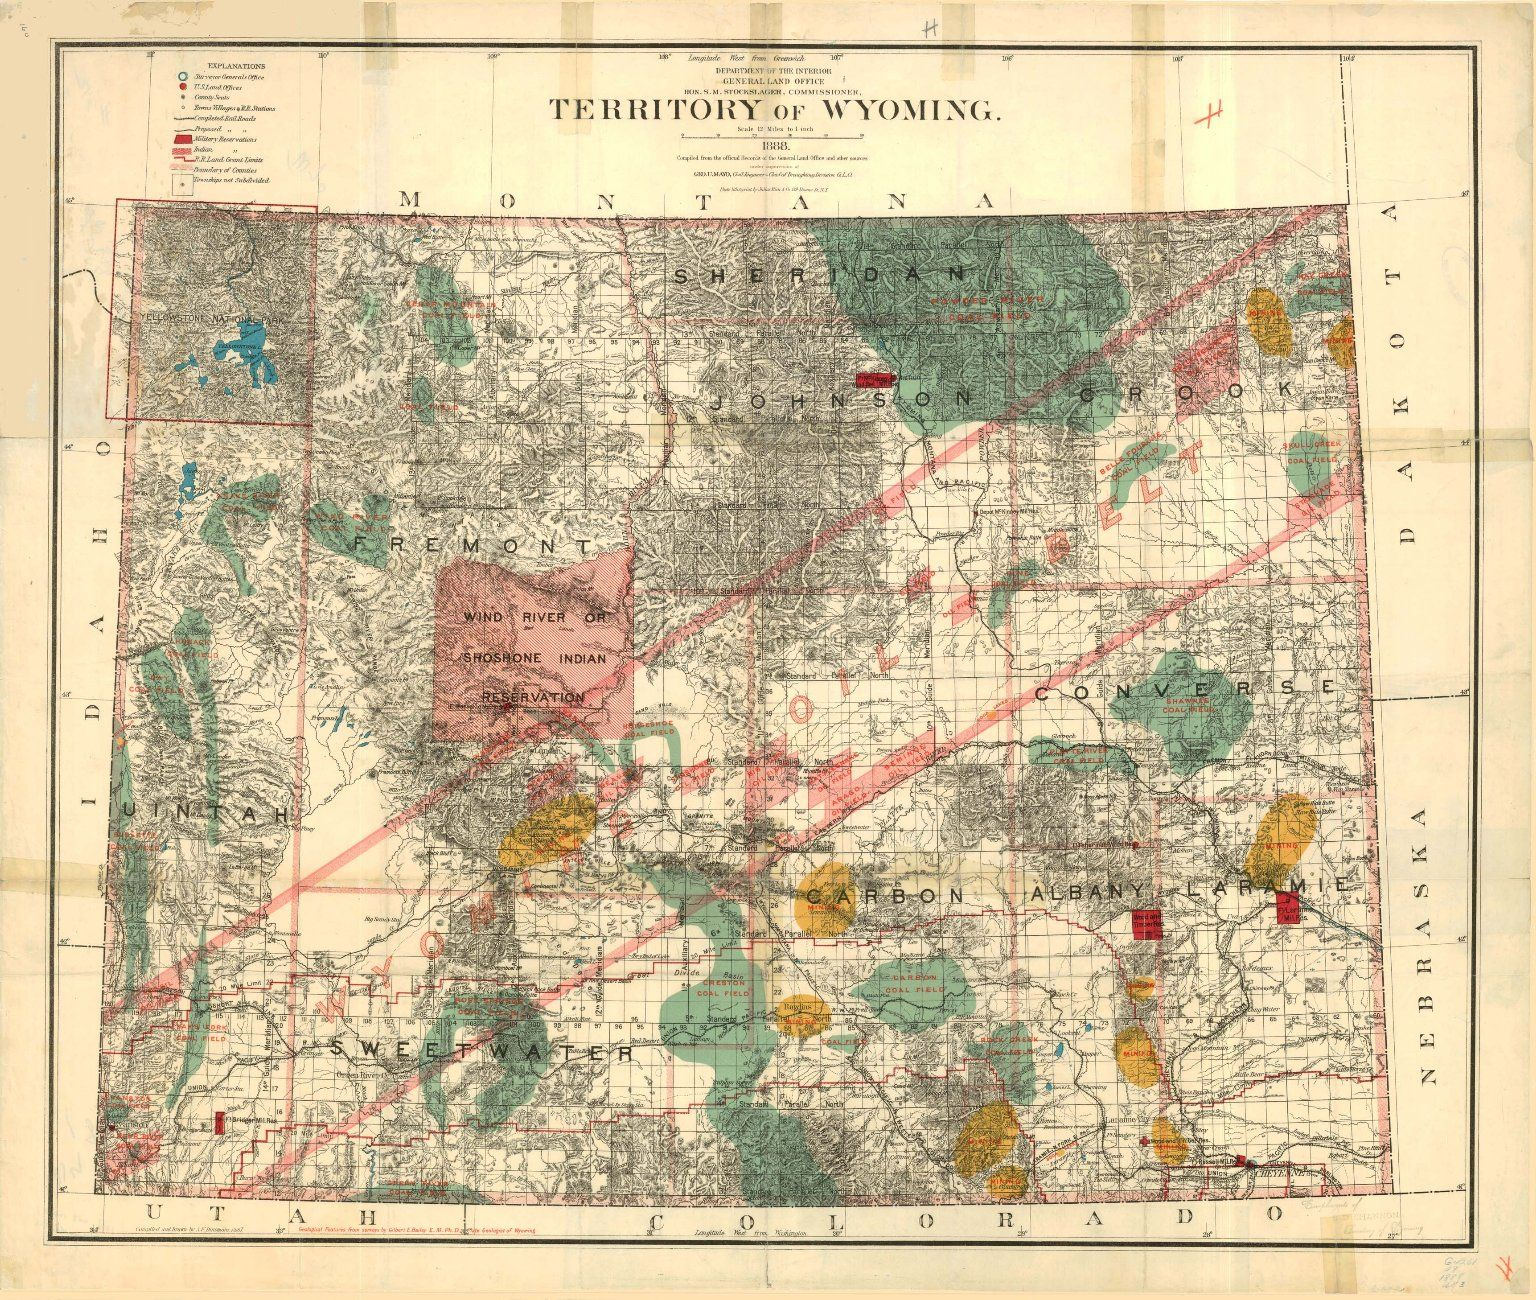 Territory Of Wyoming Map By The US Department Of The Interior - Map us oil fields